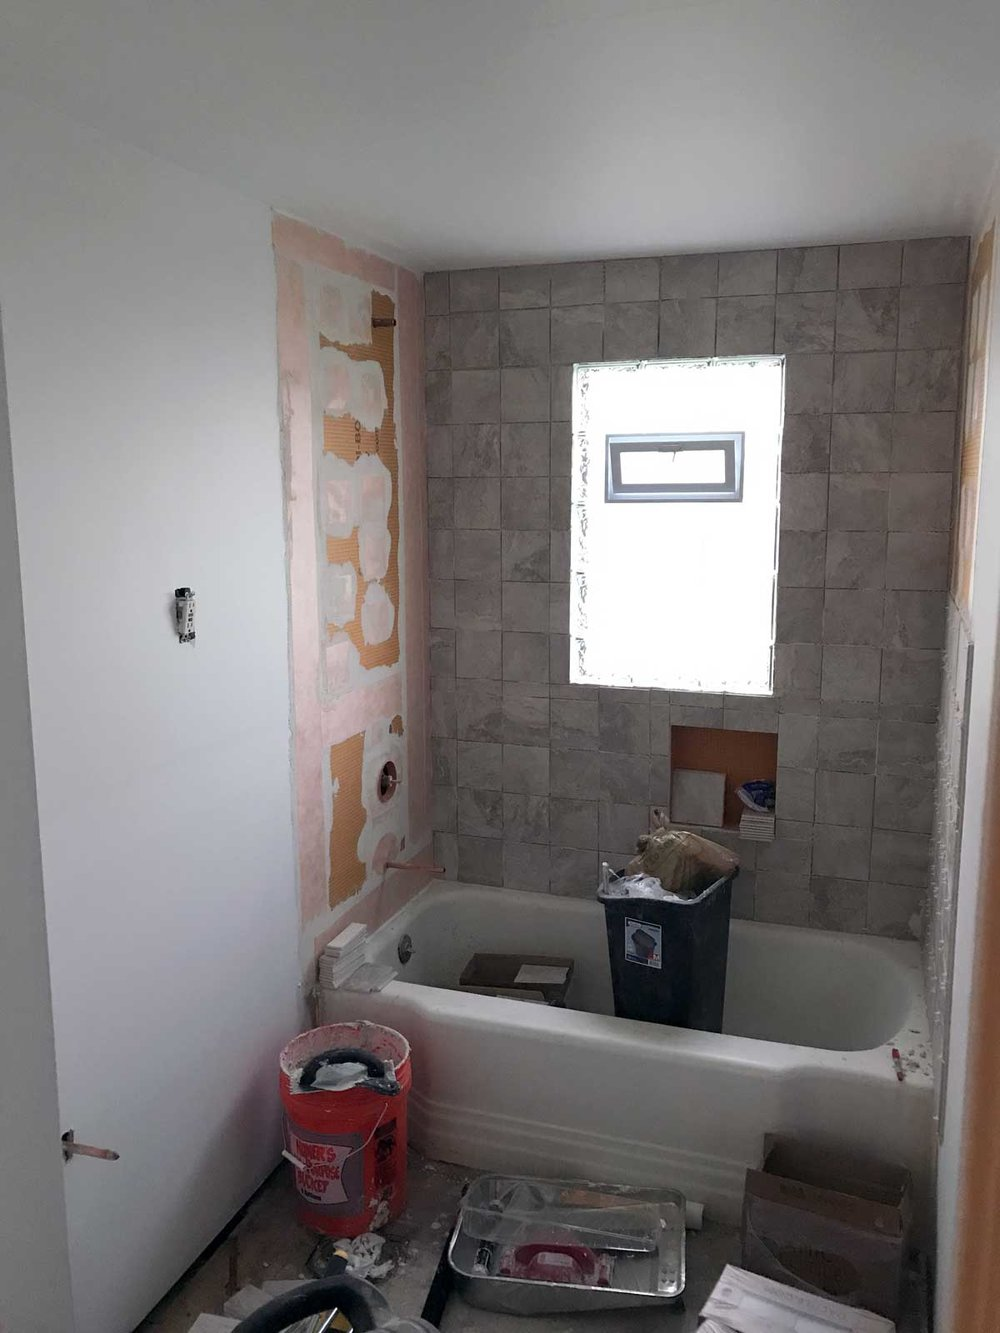 15 Day Bathroom Renovation Tiling Day 01